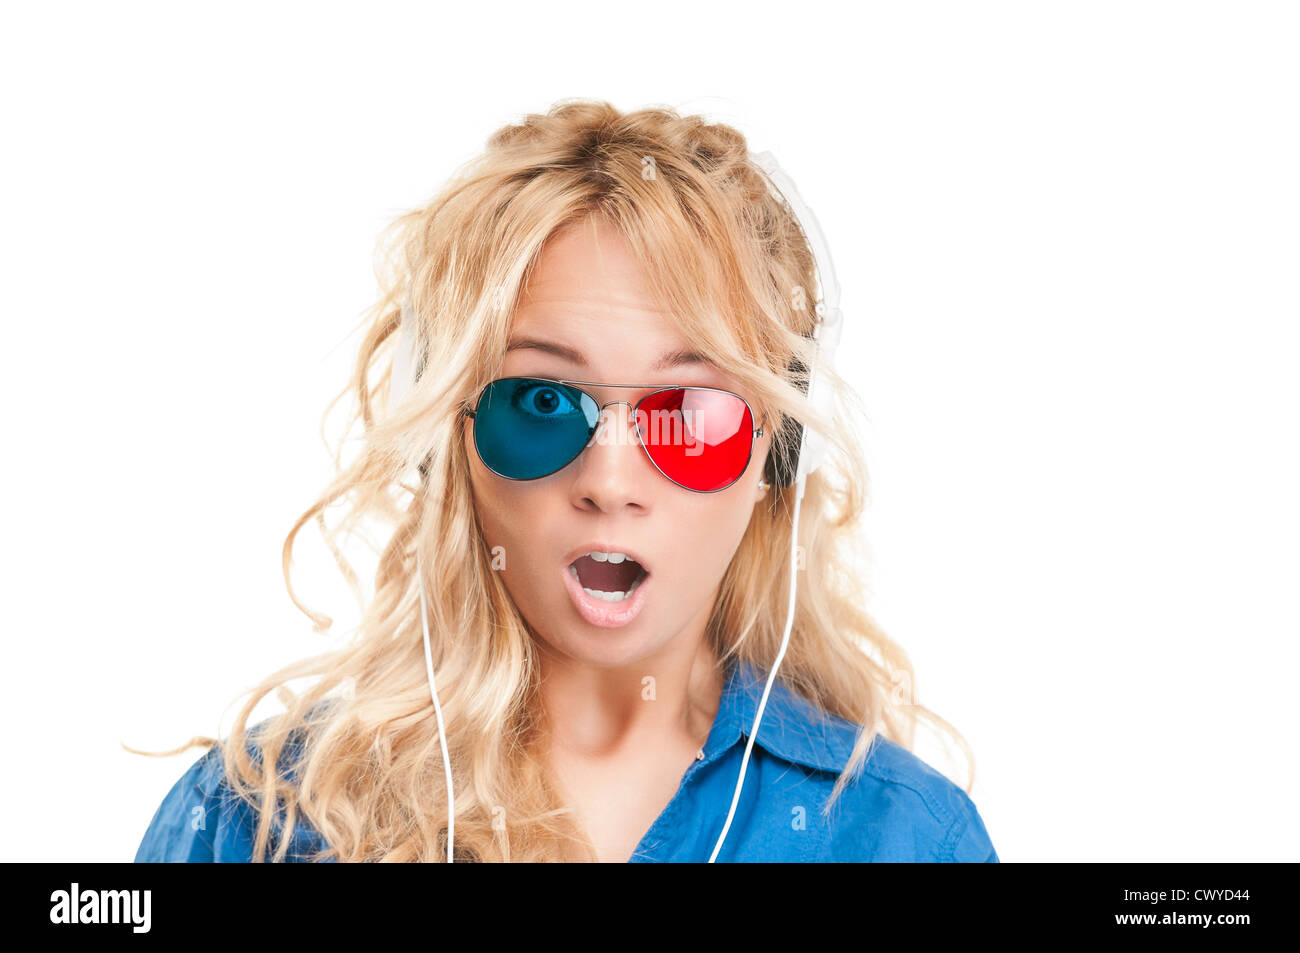 31b5f0937f6 Beautiful and shocked teenage girl watching 3d movie. Wearing 3d glasses  and headphones. Wearing surprised expression and lookin